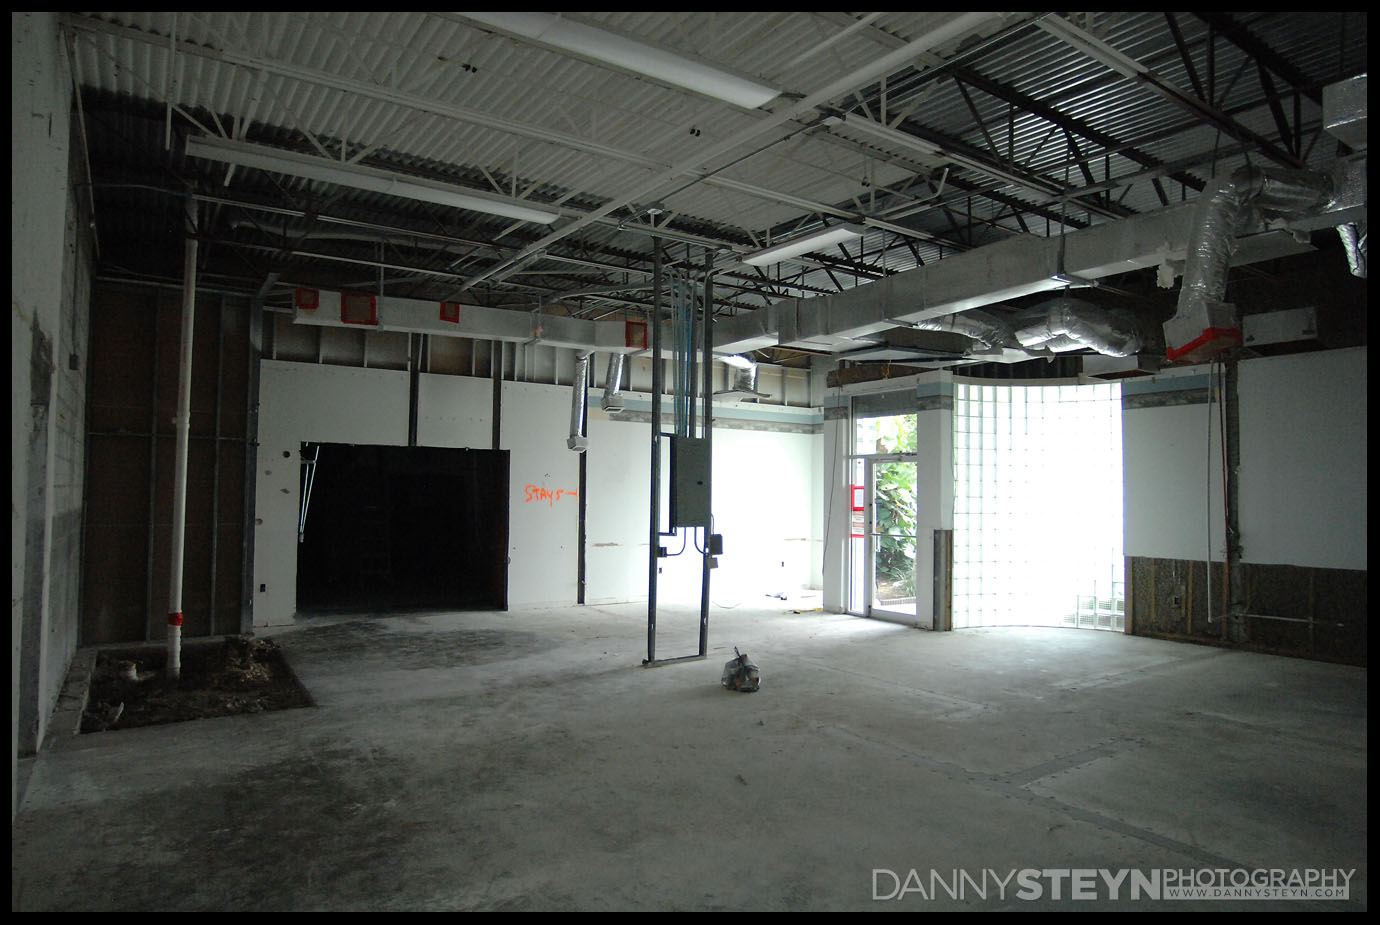 Front entrance, lobby, new bathroom and entry to the portrait studio visible in this empty space